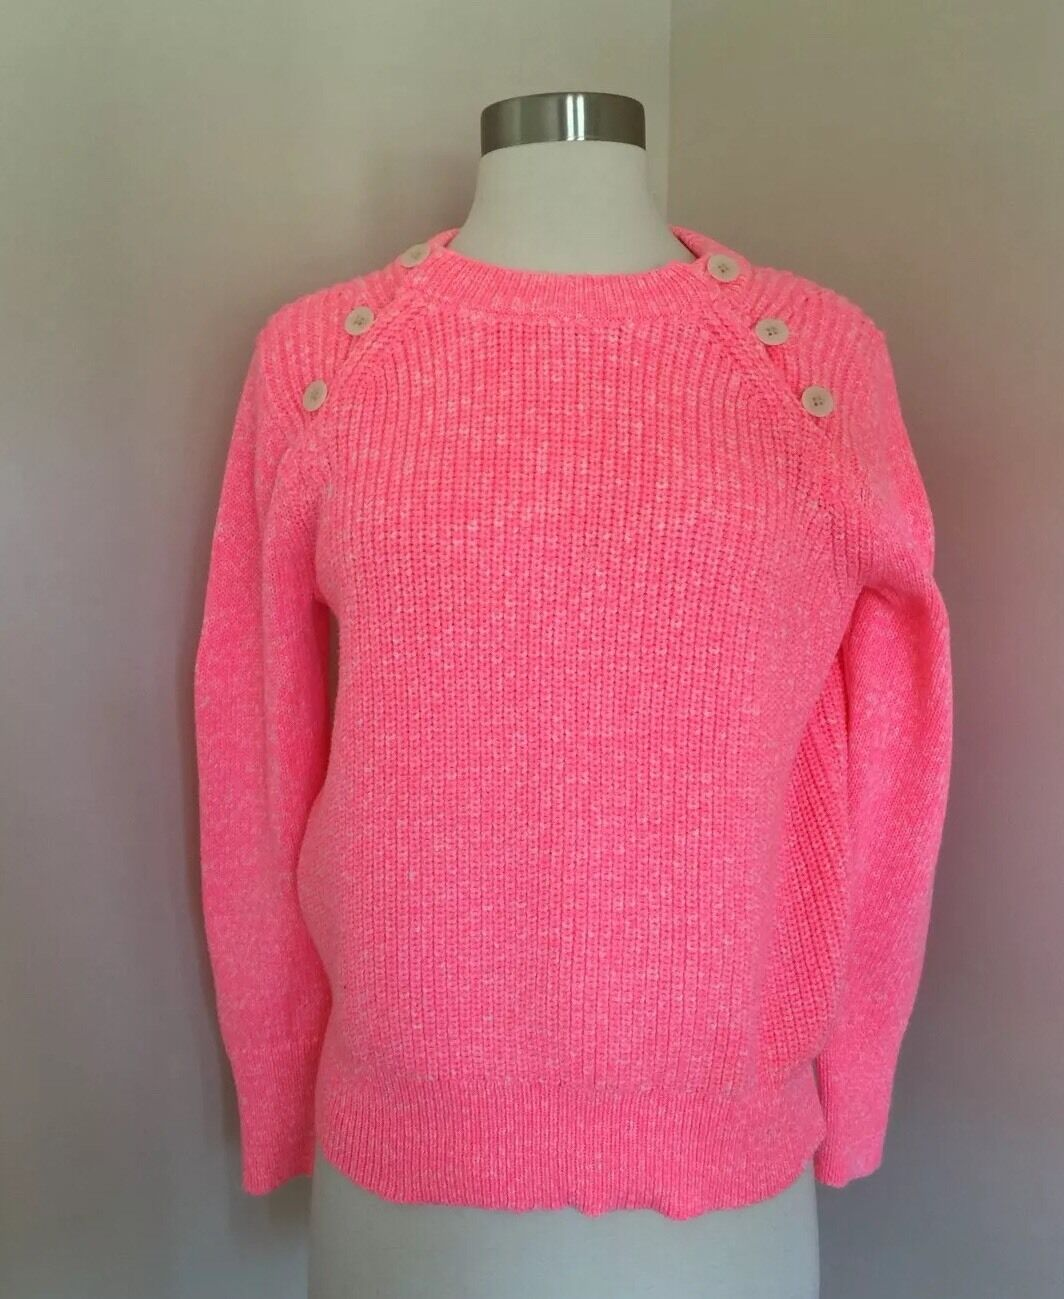 JCREW Textured Sweater Anchor Button Variegated Pink Neon Sz S G0248 NWT